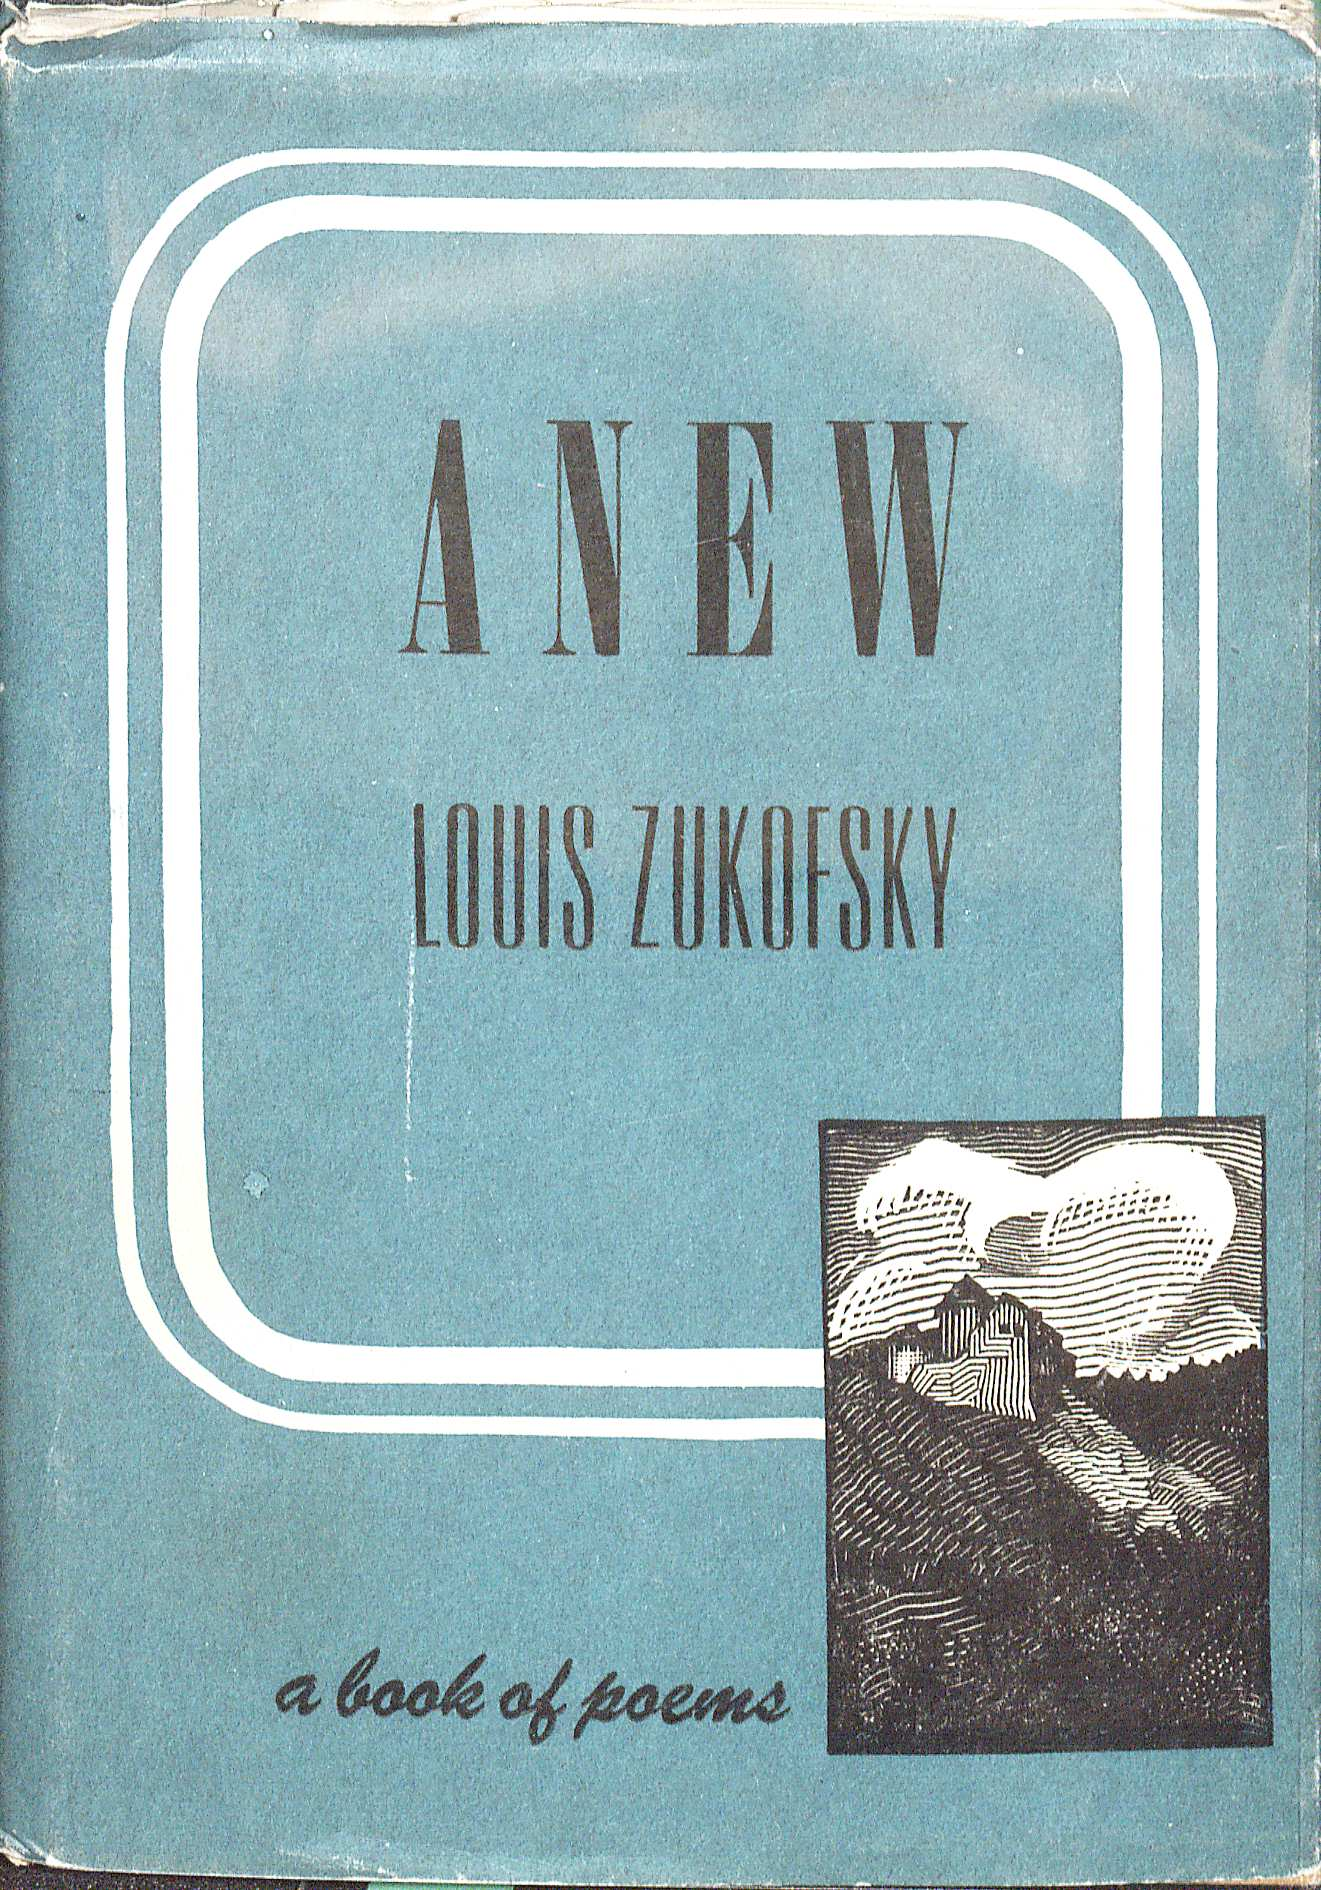 1946 copy of ANEW (PS3549 .U47A8 1946. Gift of Marvin Tatum. Image by Petrina Jackson.)